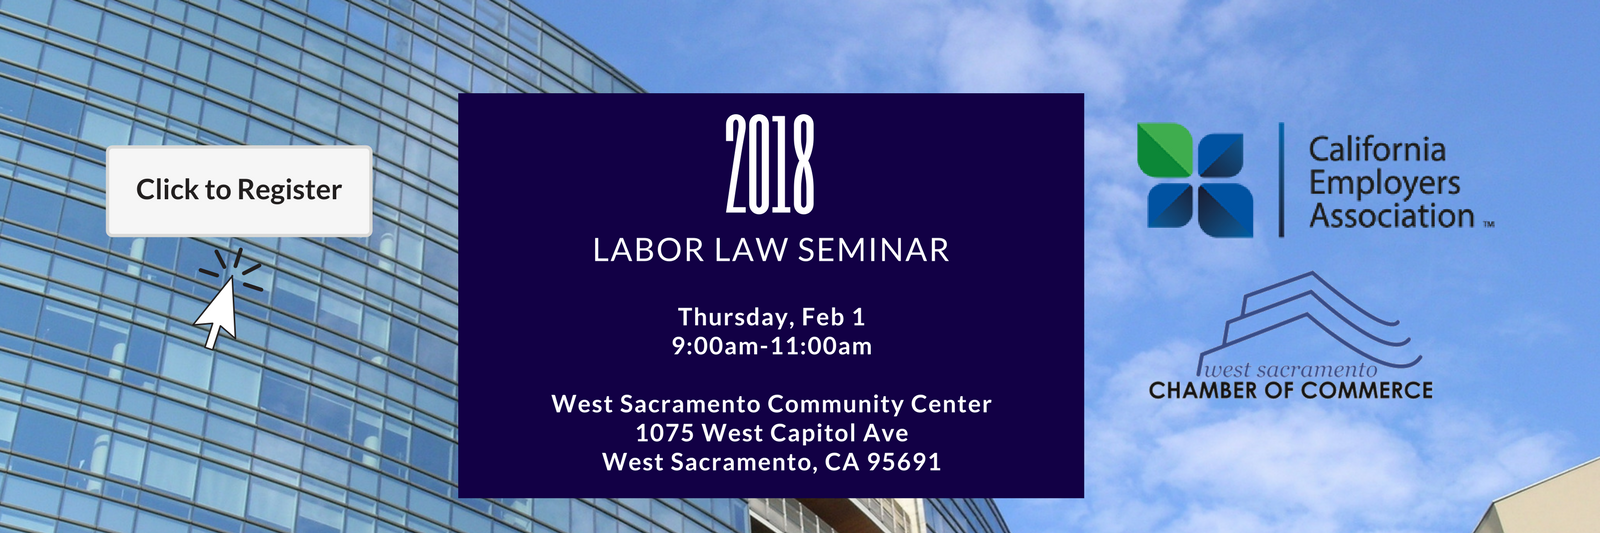 labor-law-seminar-IMAGE-FOR-WEB(1).png